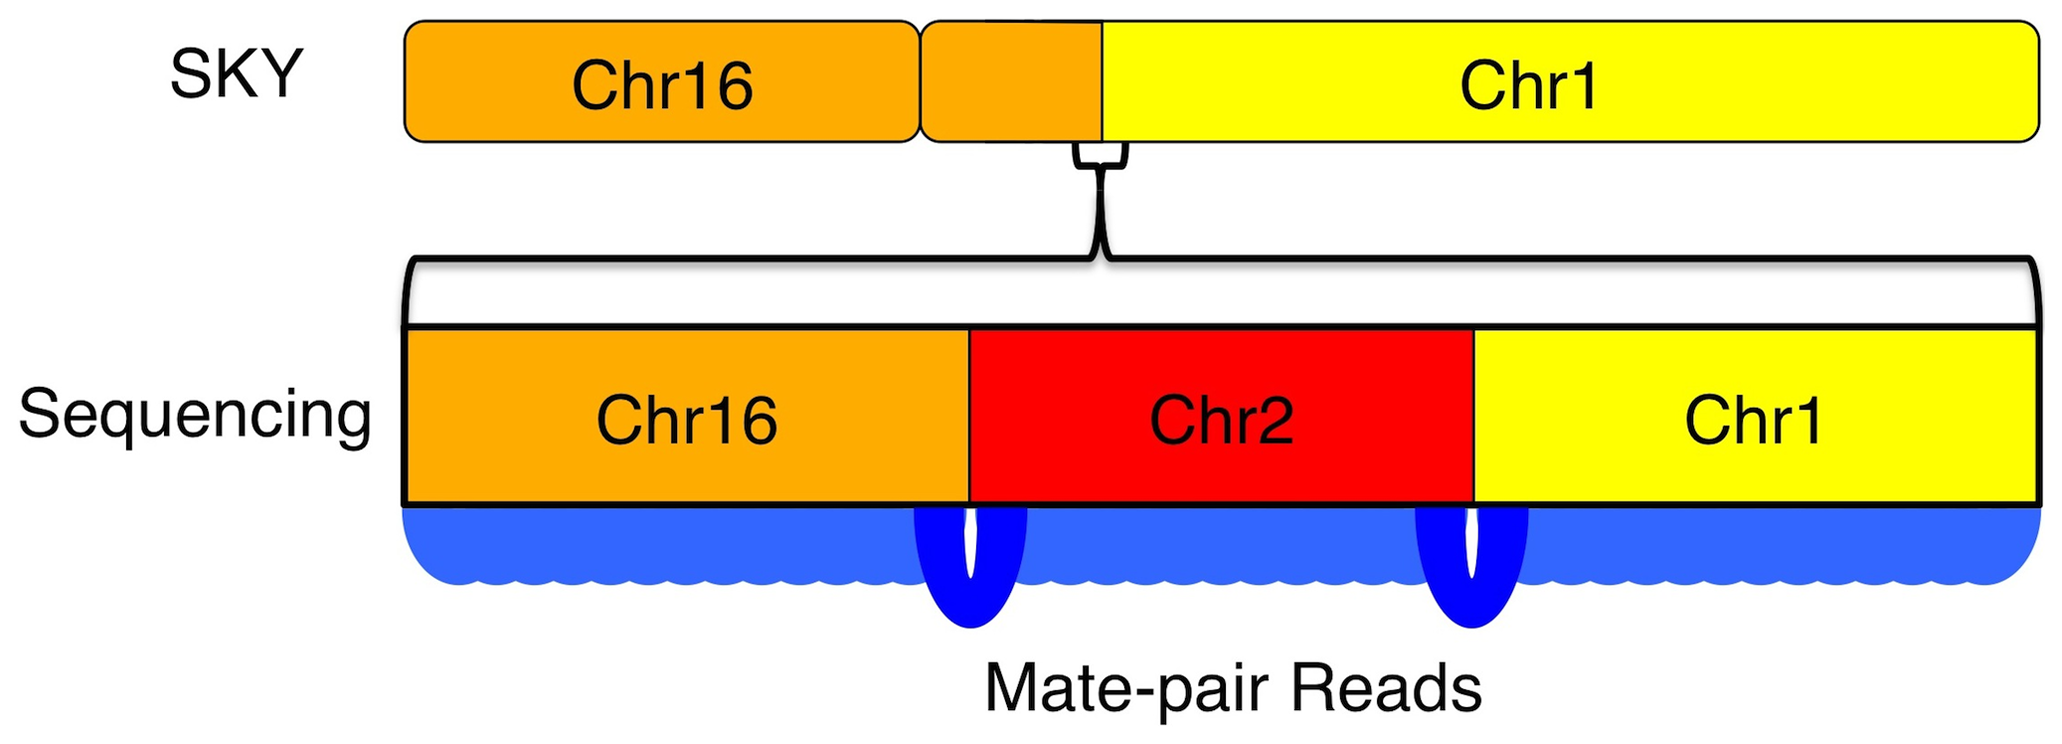 Increased resolution of structural variations by sequencing.